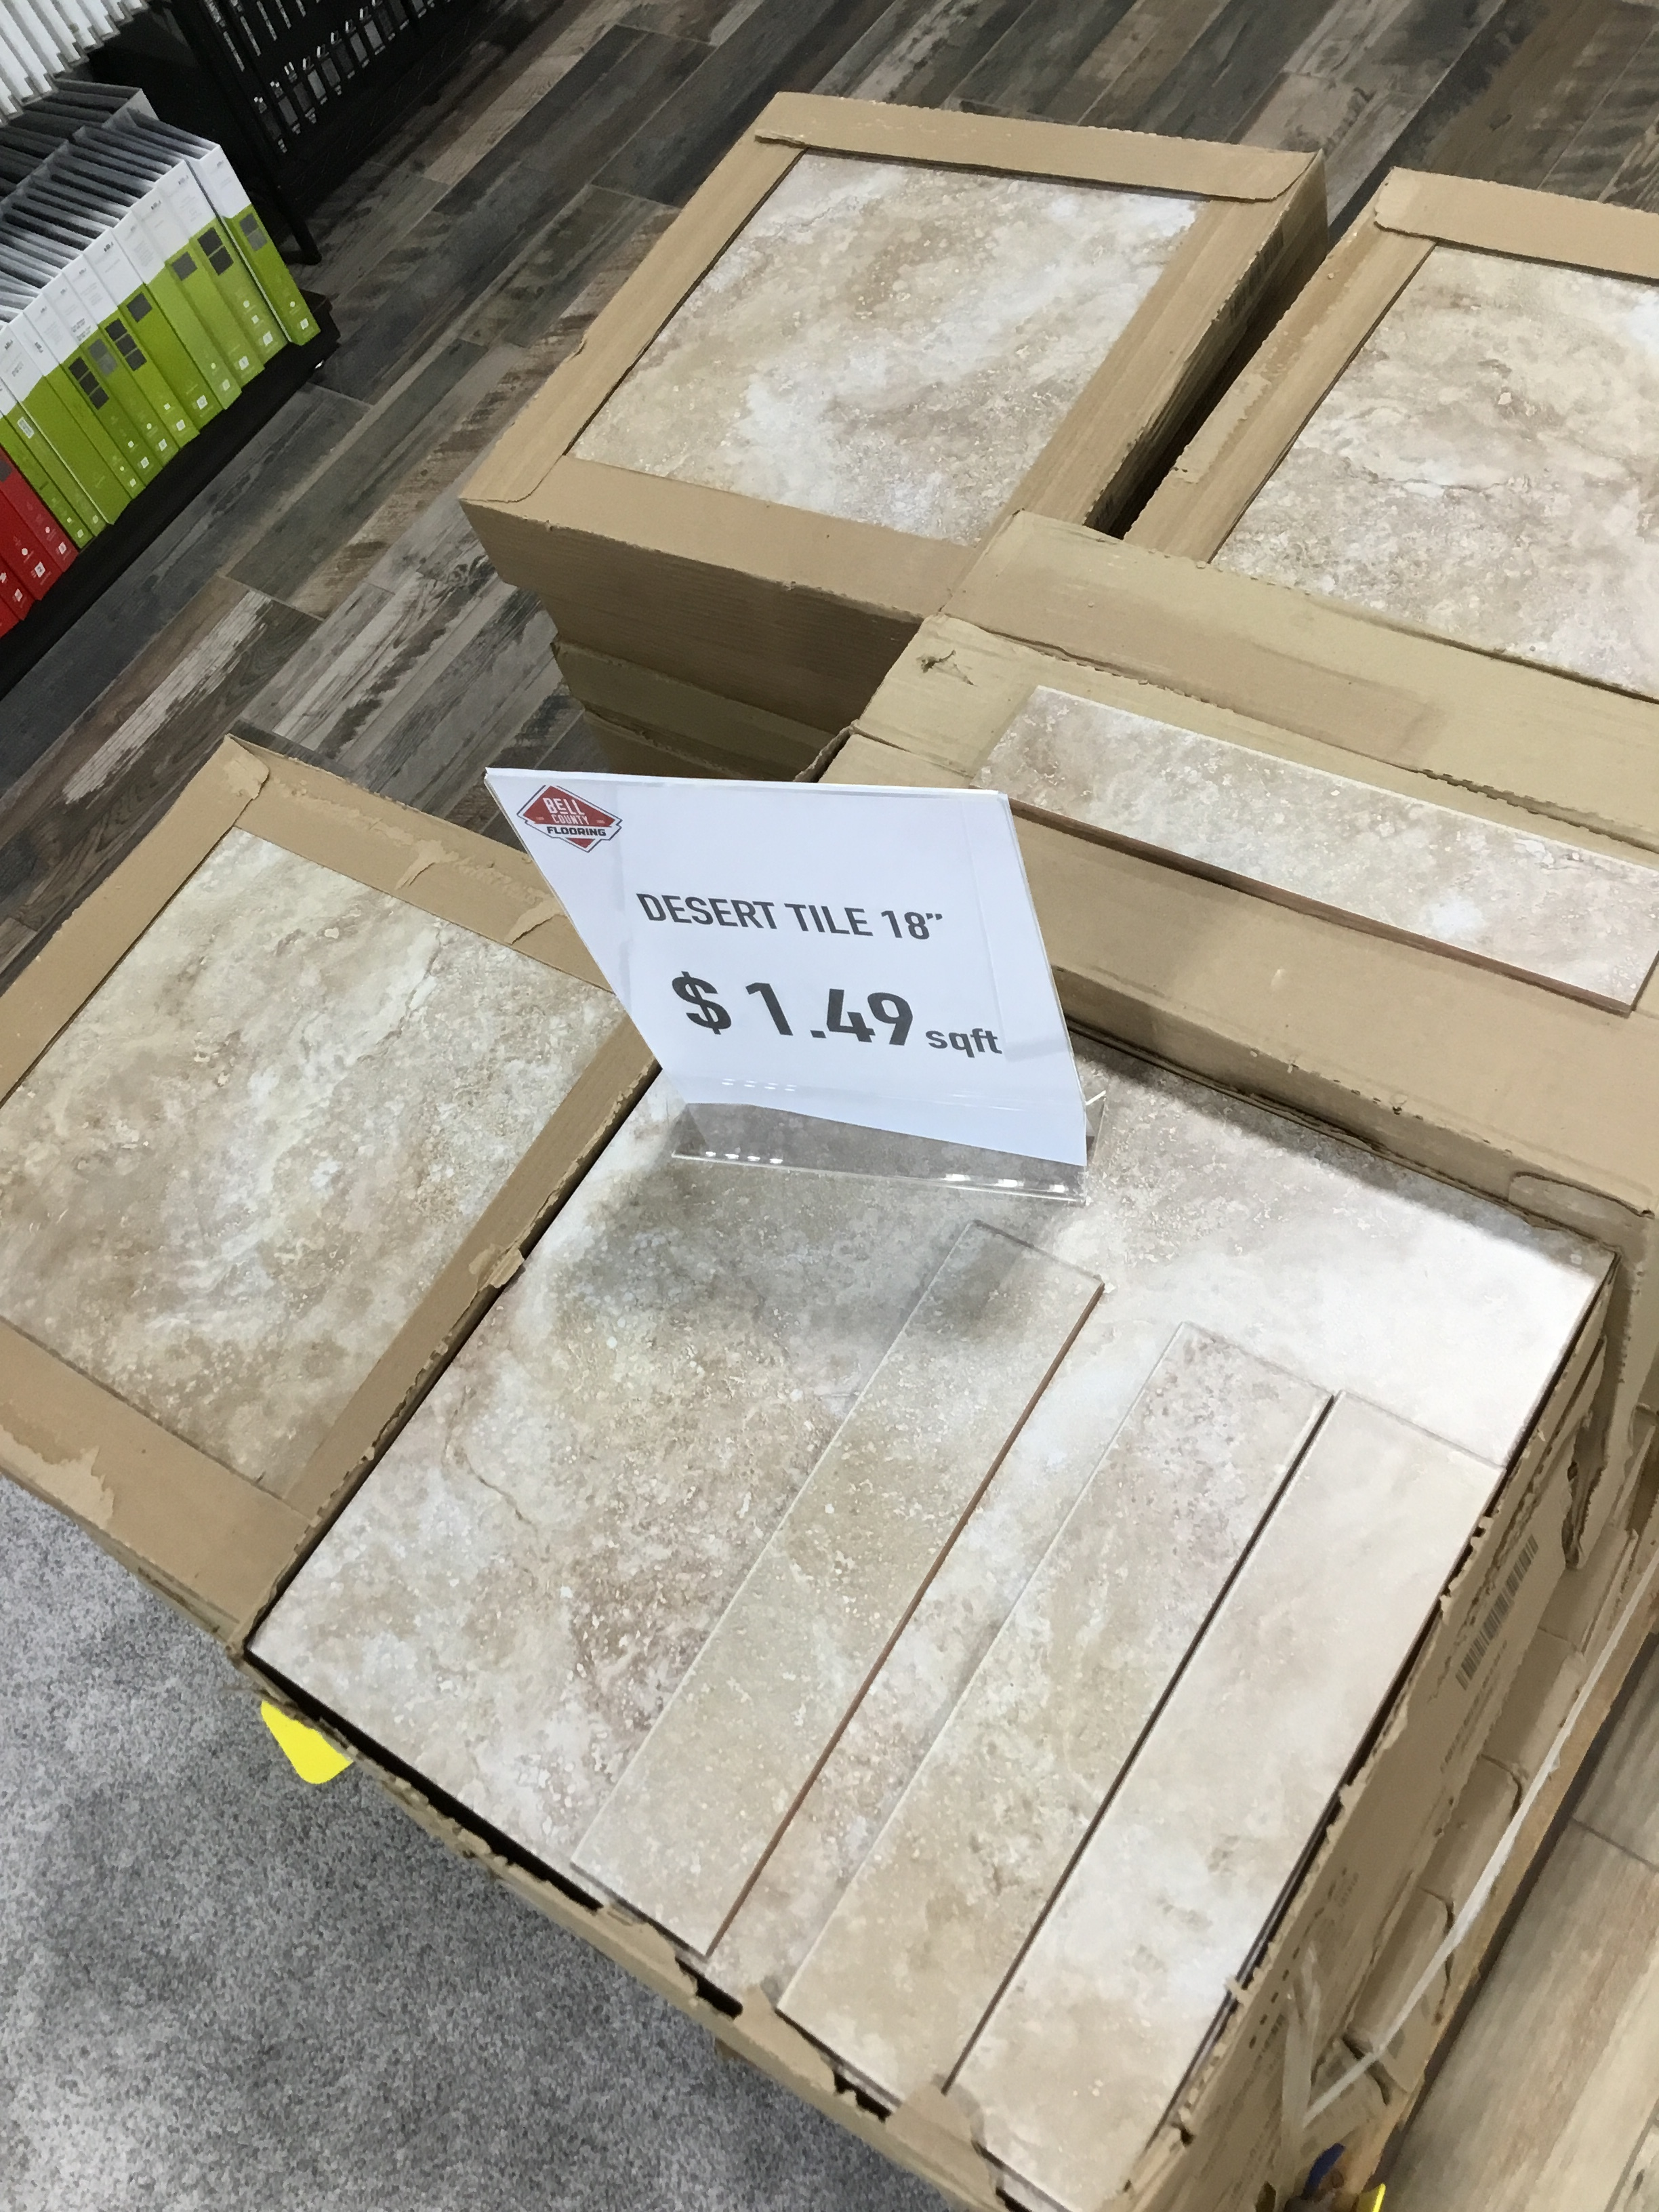 "Desert Tile-SALE!! - Color: VariationMeasurements: 18""x18""Cost: $1.49/sqft*This tile will come with the bullnose*"